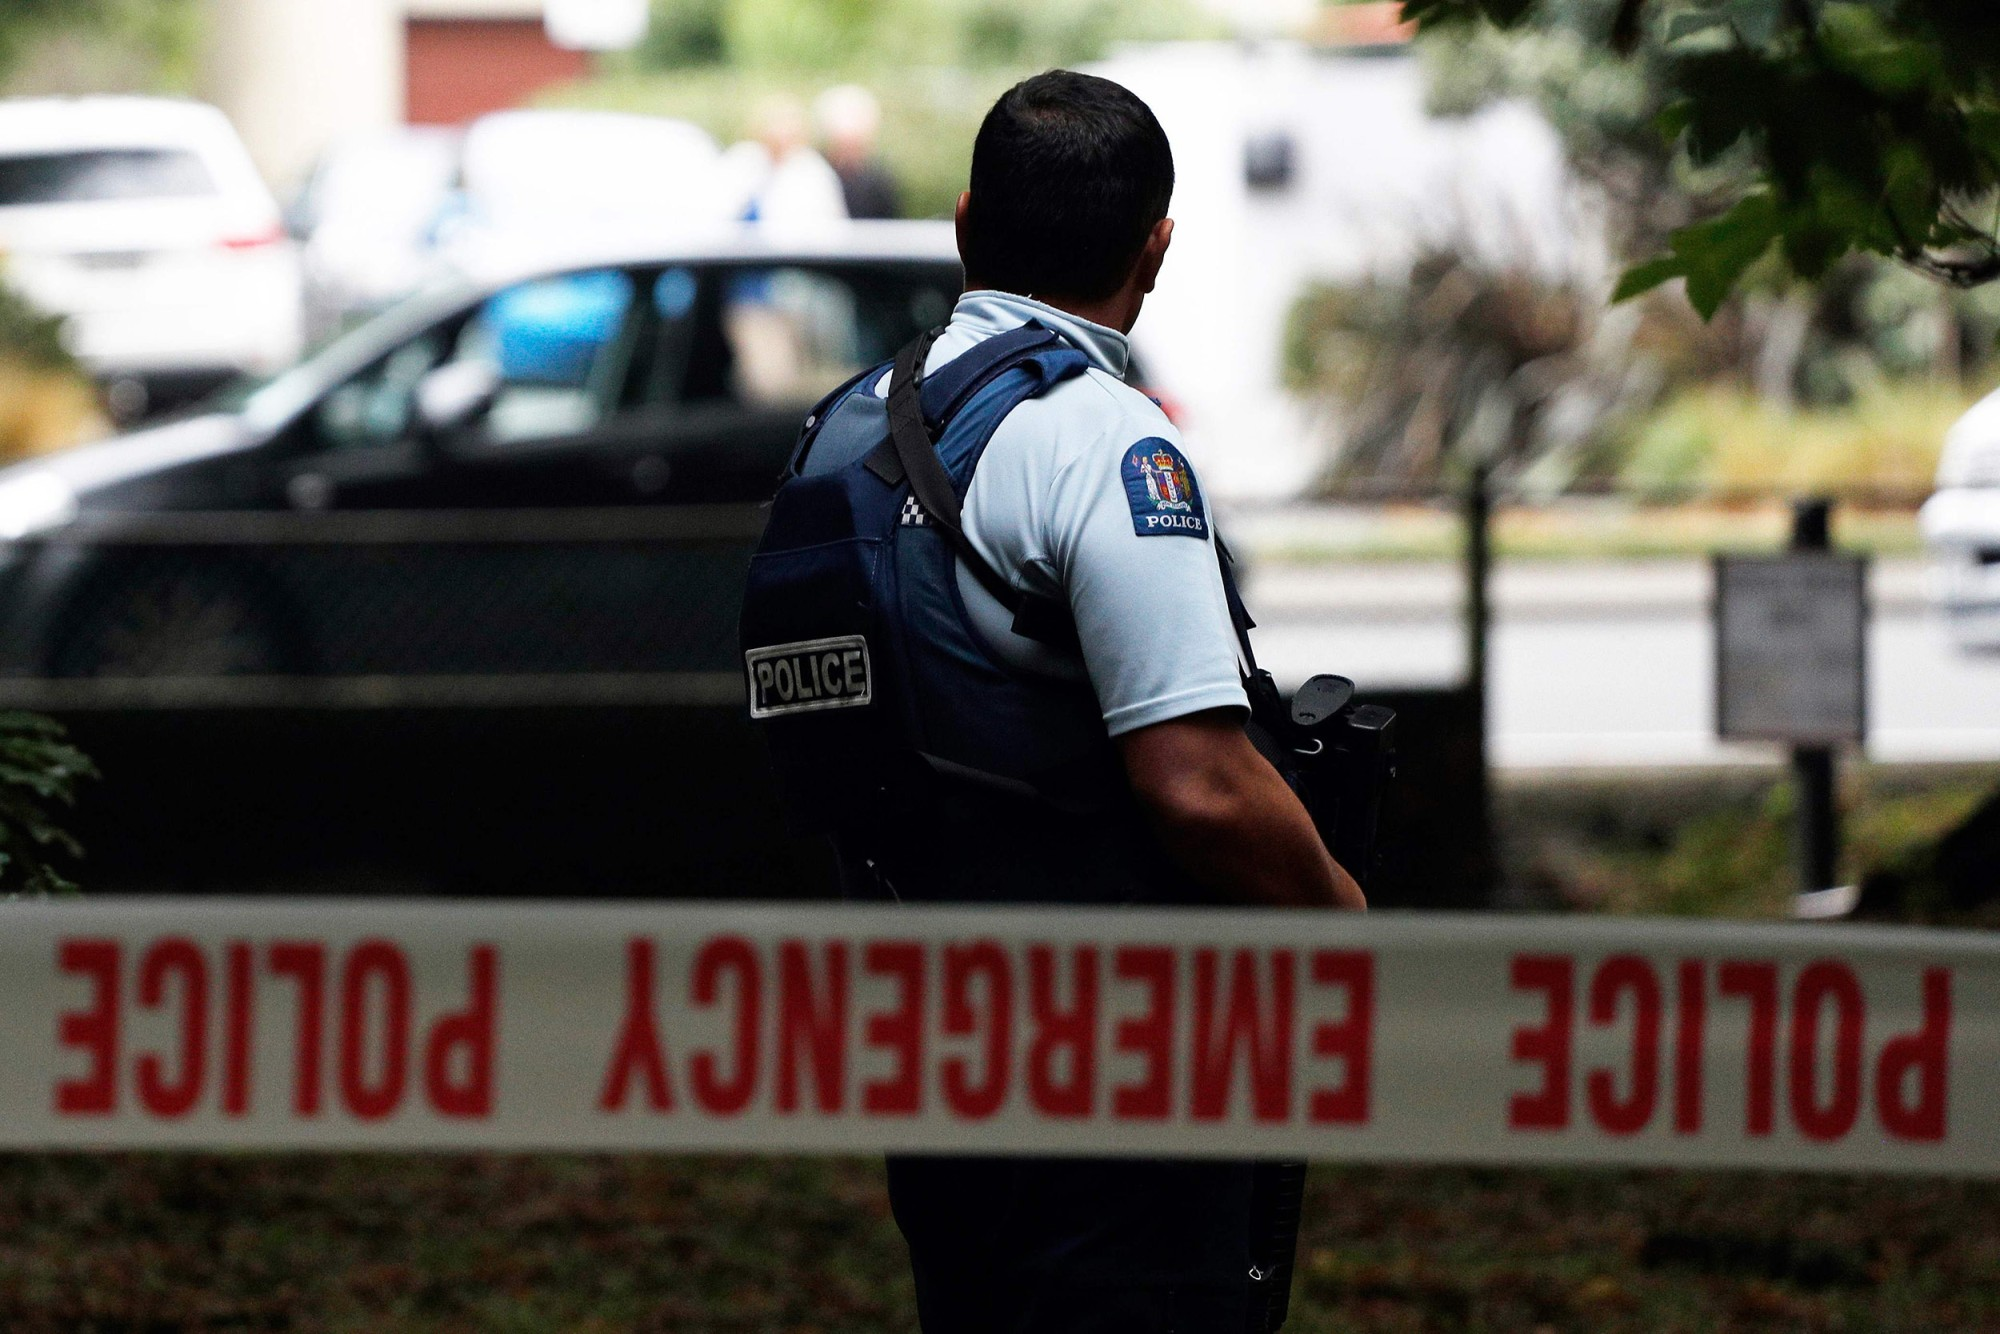 Image: A police officer secures the area in front of the Masjid al Noor mosque after a shooting incident in Christchurch